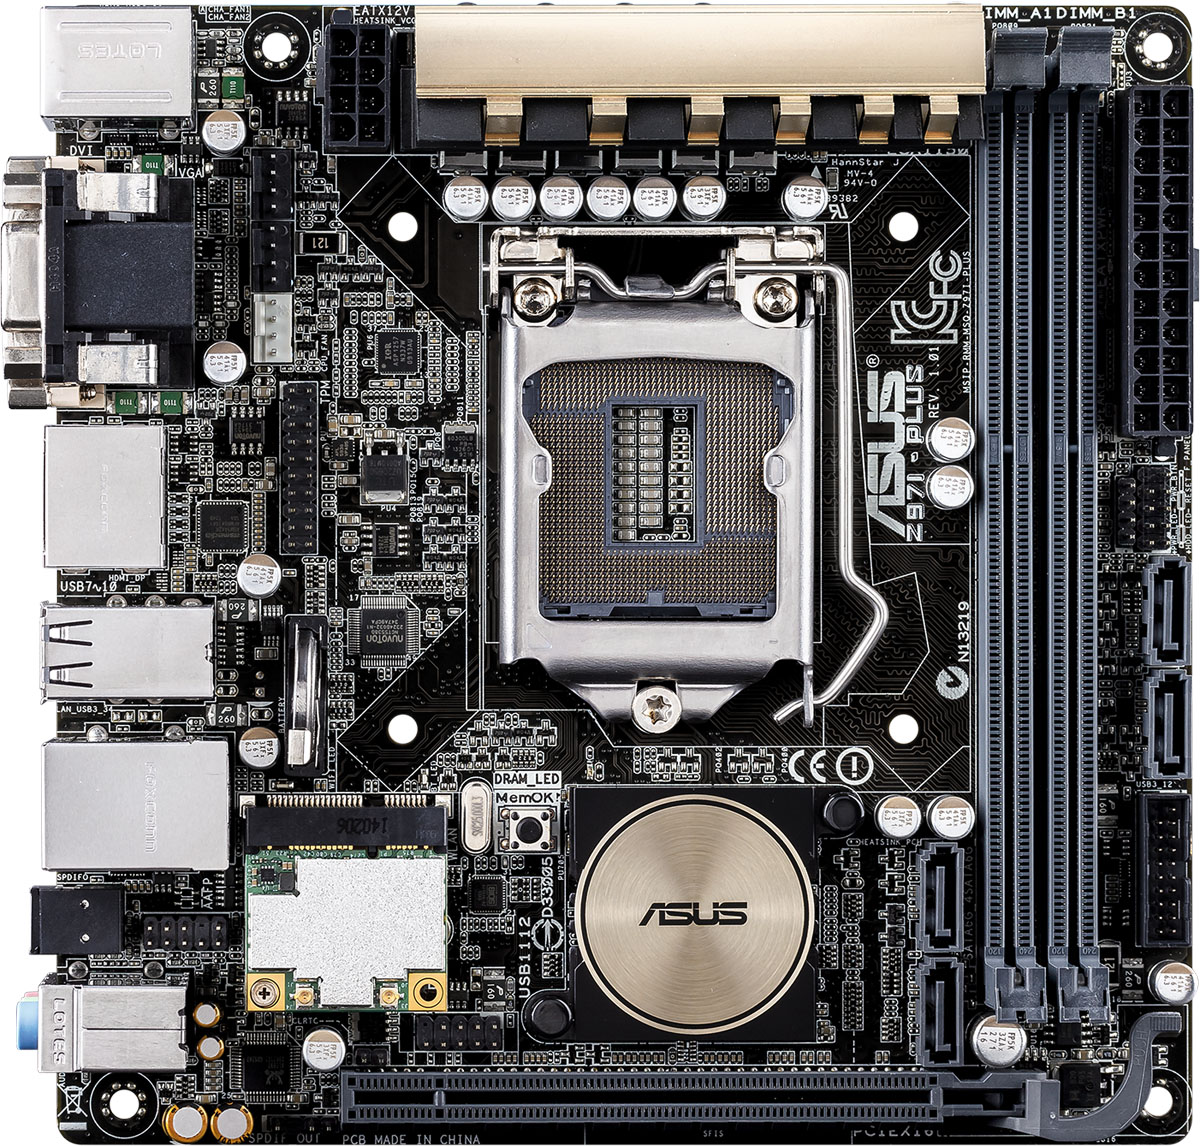 ASUS Z97I-PLUS mini-ITX Motherboard Review – Techgage